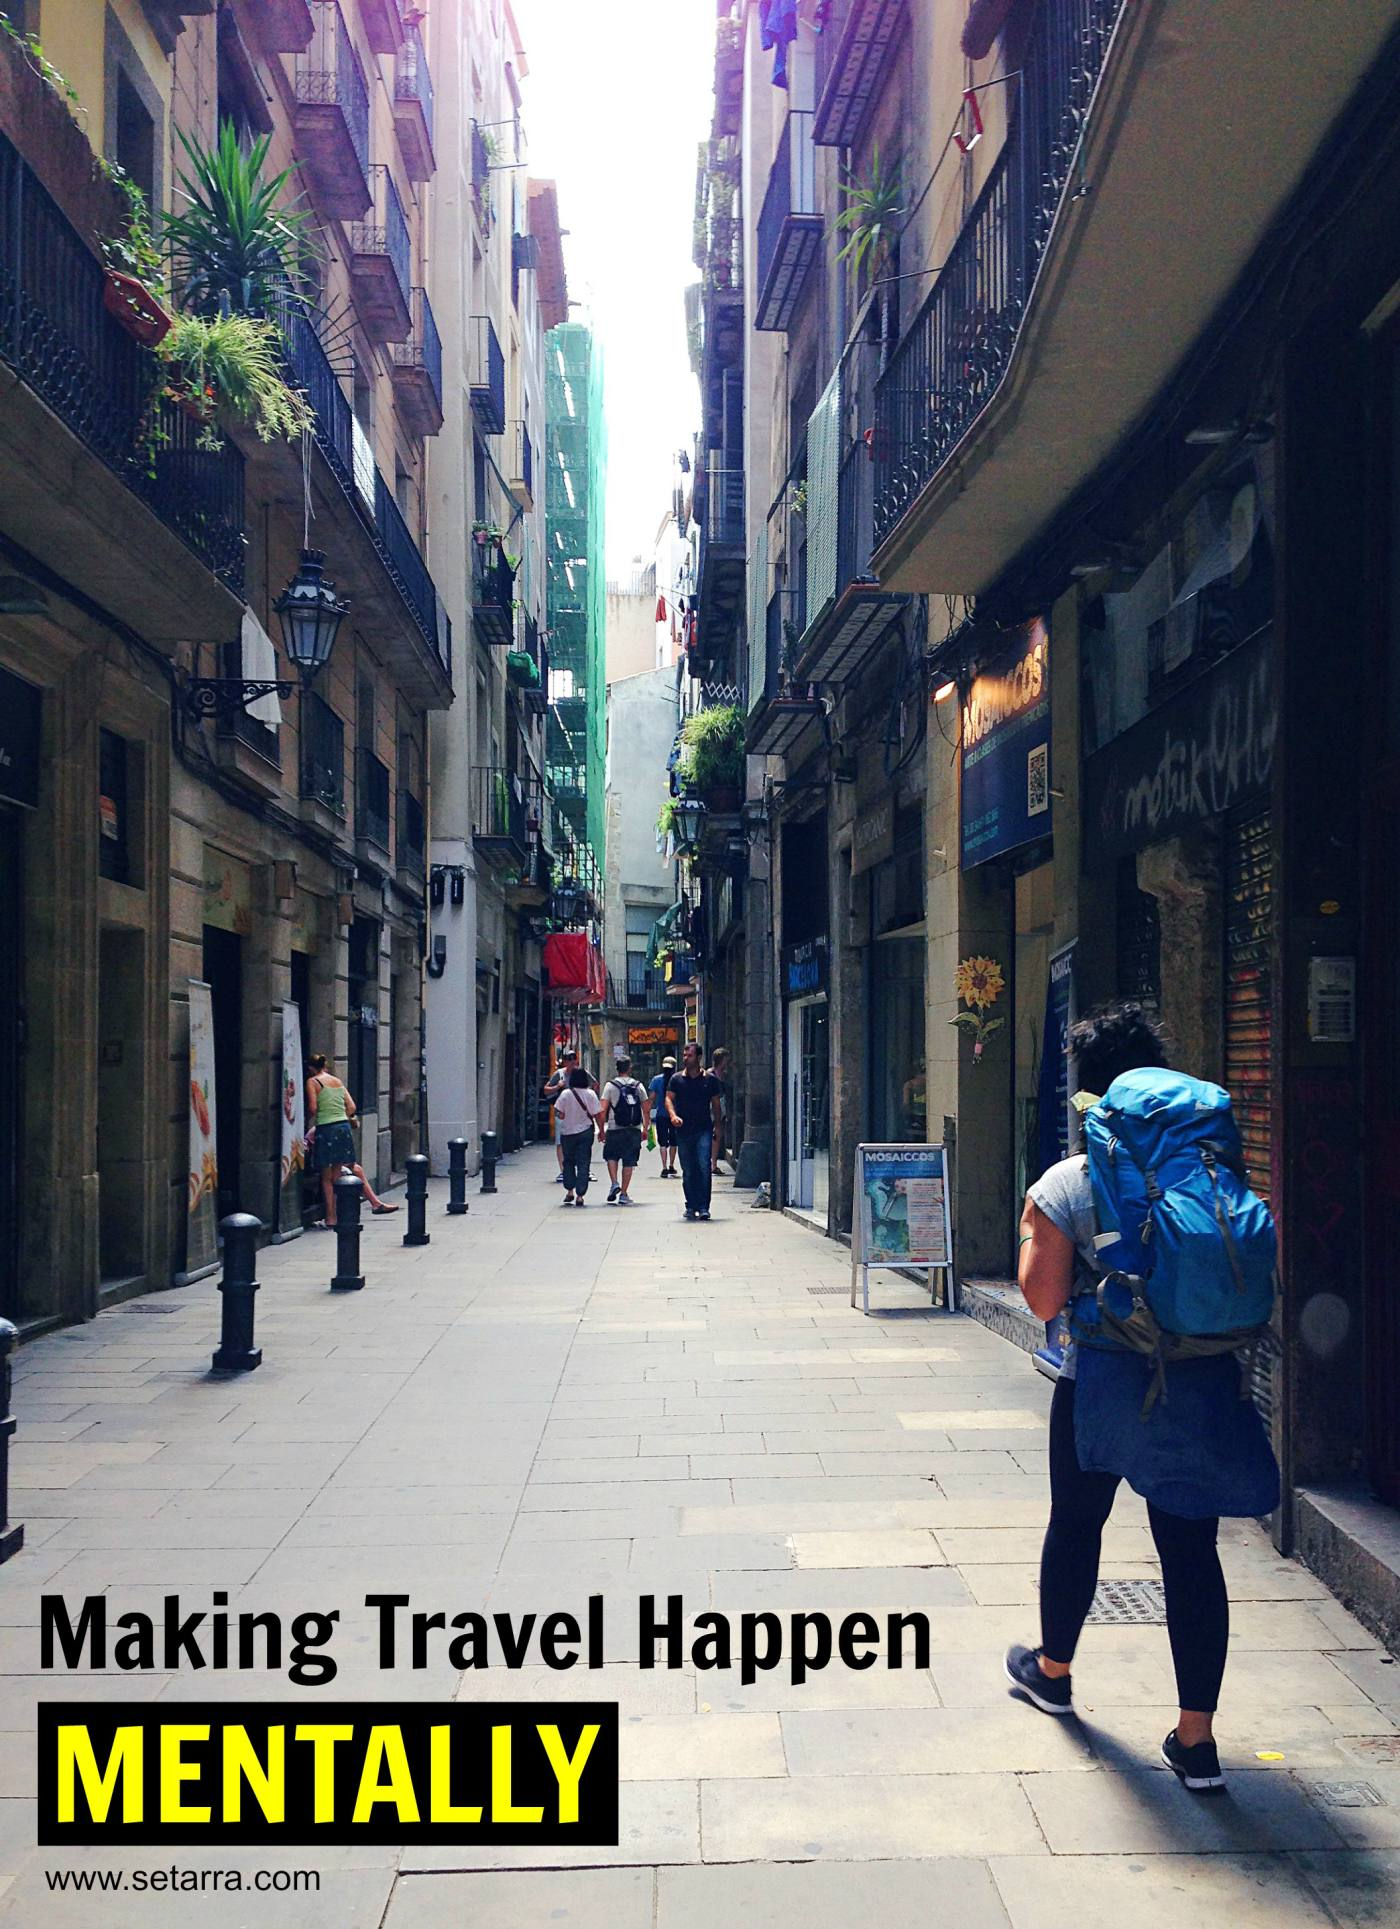 Making Travel Happen Mentally